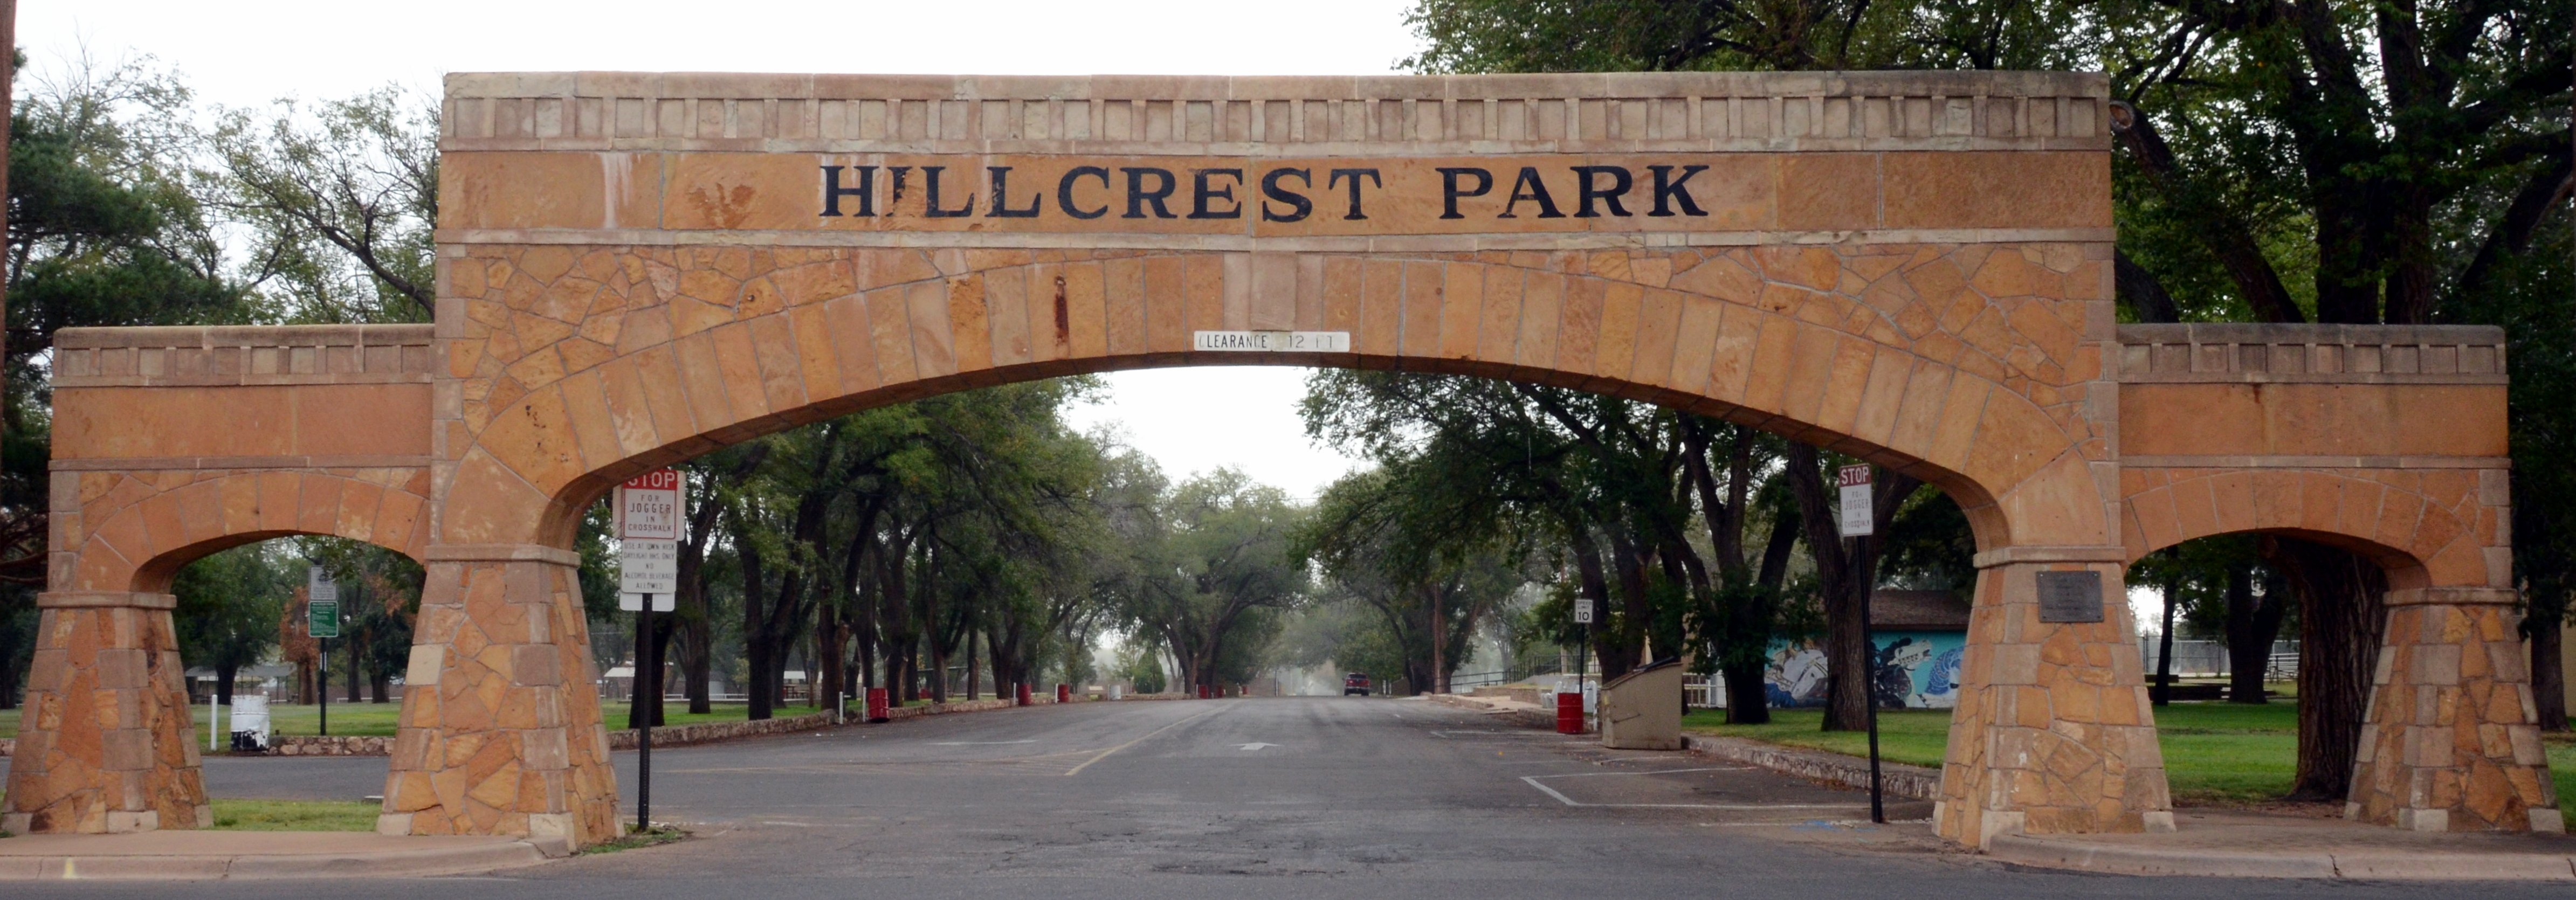 New mexico curry county clovis - File Archway To Hillcrest Park Clovis Nm Jpg